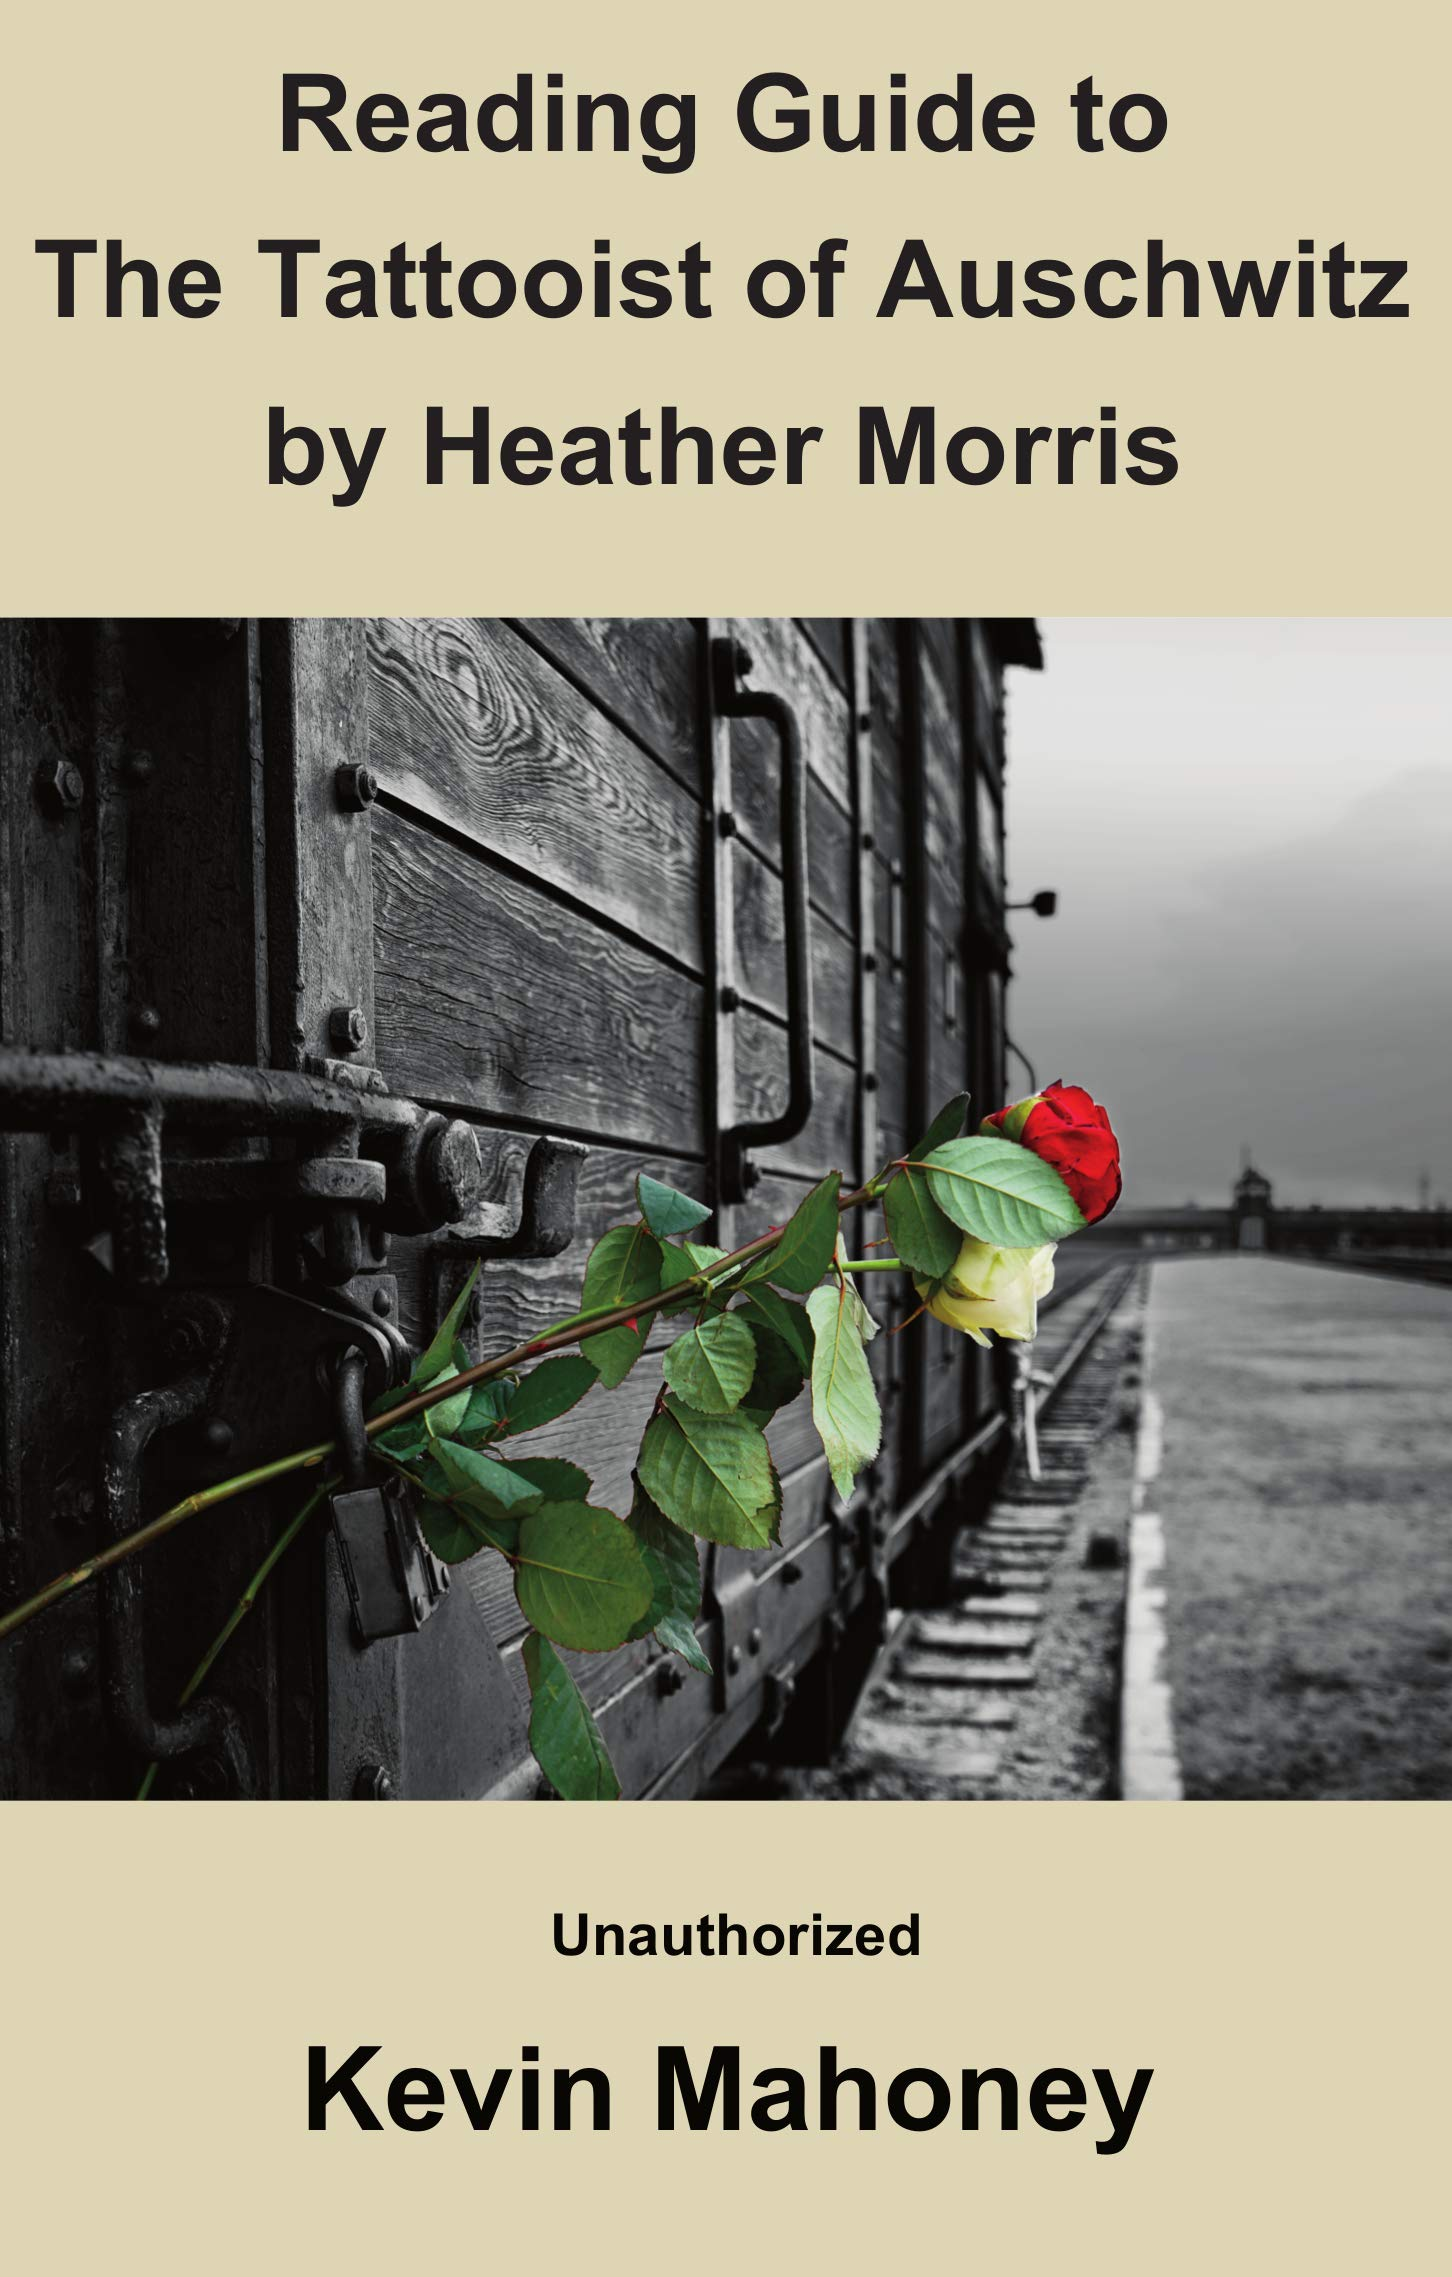 Reading Guide To The Tattooist Of Auschwitz By Heather Morris  Unauthorized   English Edition